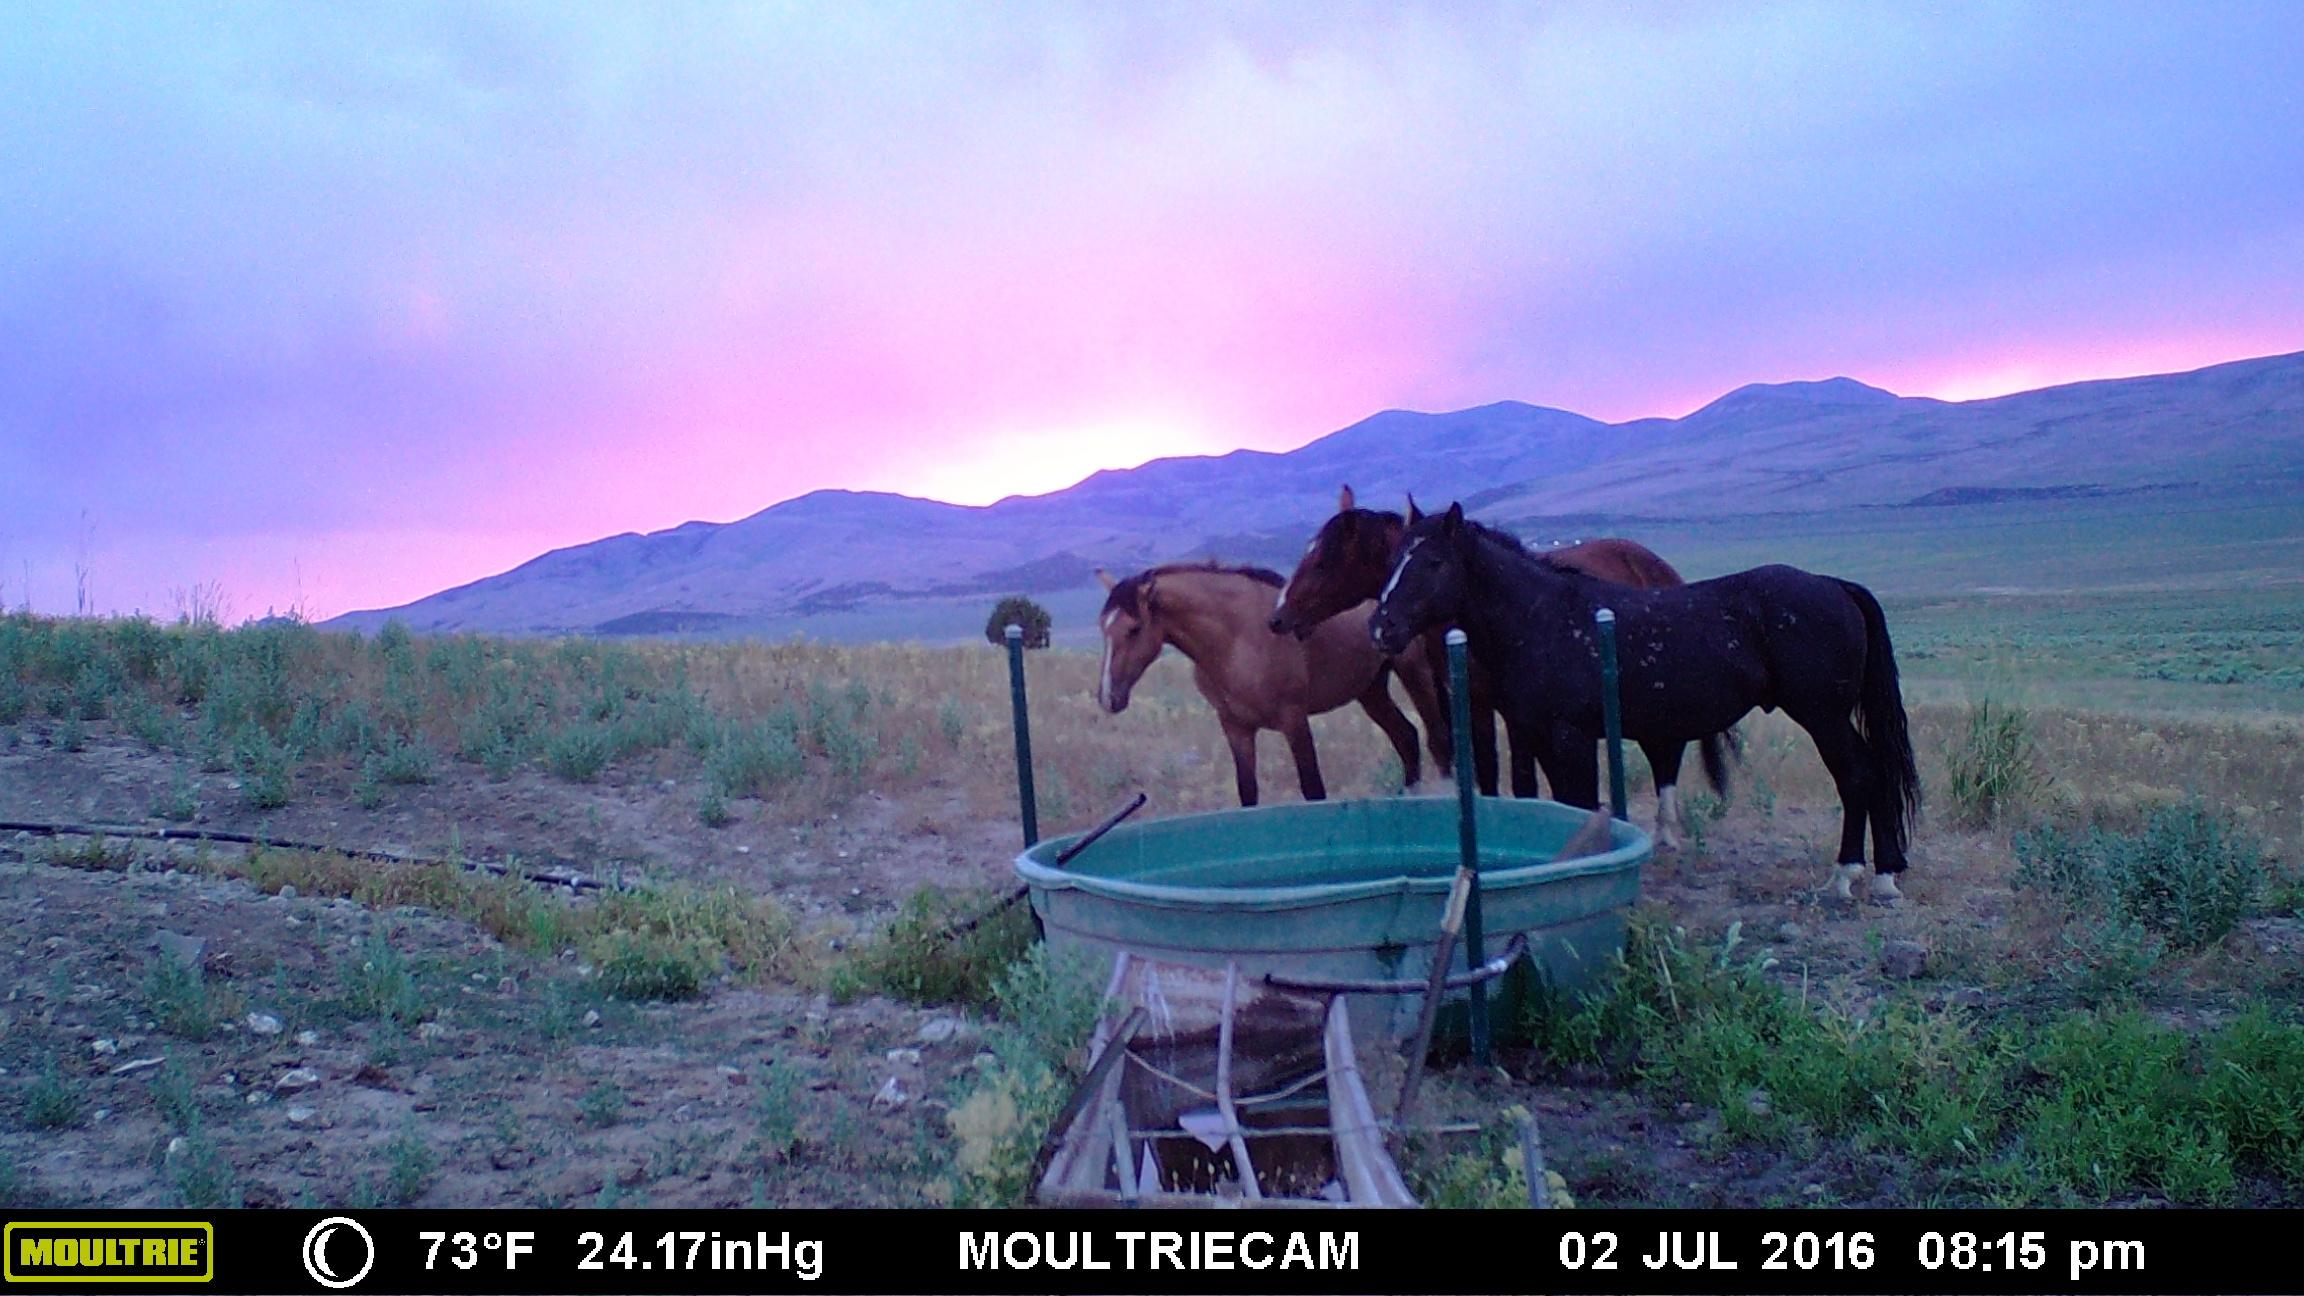 A trail camera captures a photo of mustangs in the Nevada wild on July 2, 2016 (Photo courtesy Nevada Dept. of Wildlife)